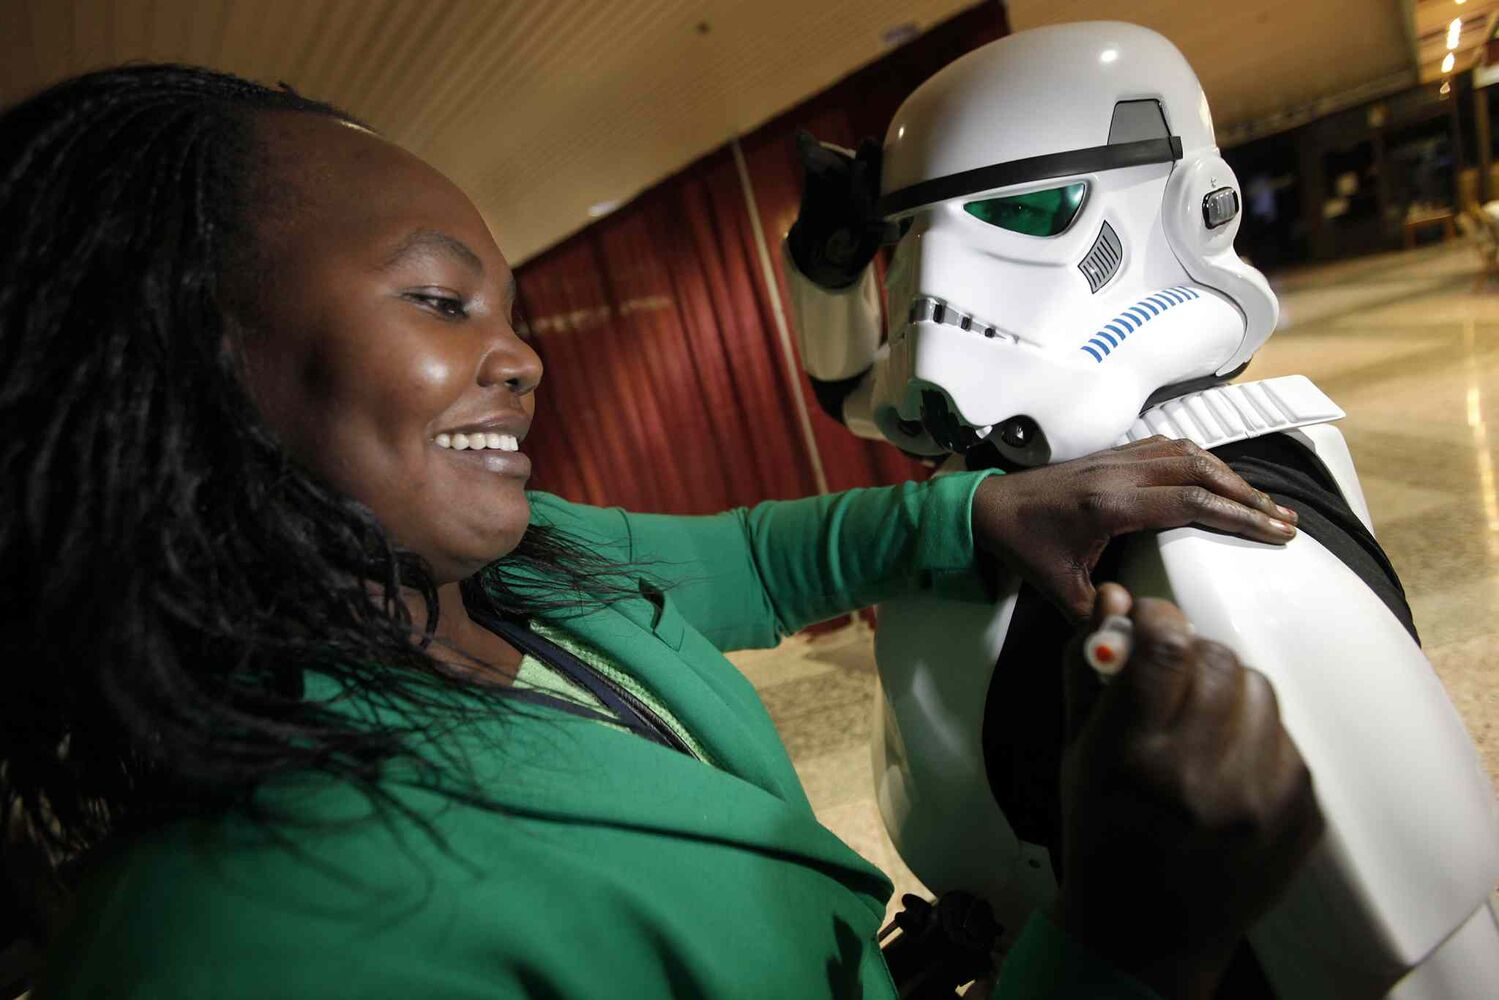 Public health nurse (not a costume) Margaret Juan pretends to give James Antoine, dressed as an Imperial stormtrooper from the Star Wars films, a flu vaccination at the WRHA flu clinic at C4. (John Woods / Winnipeg Free Press)